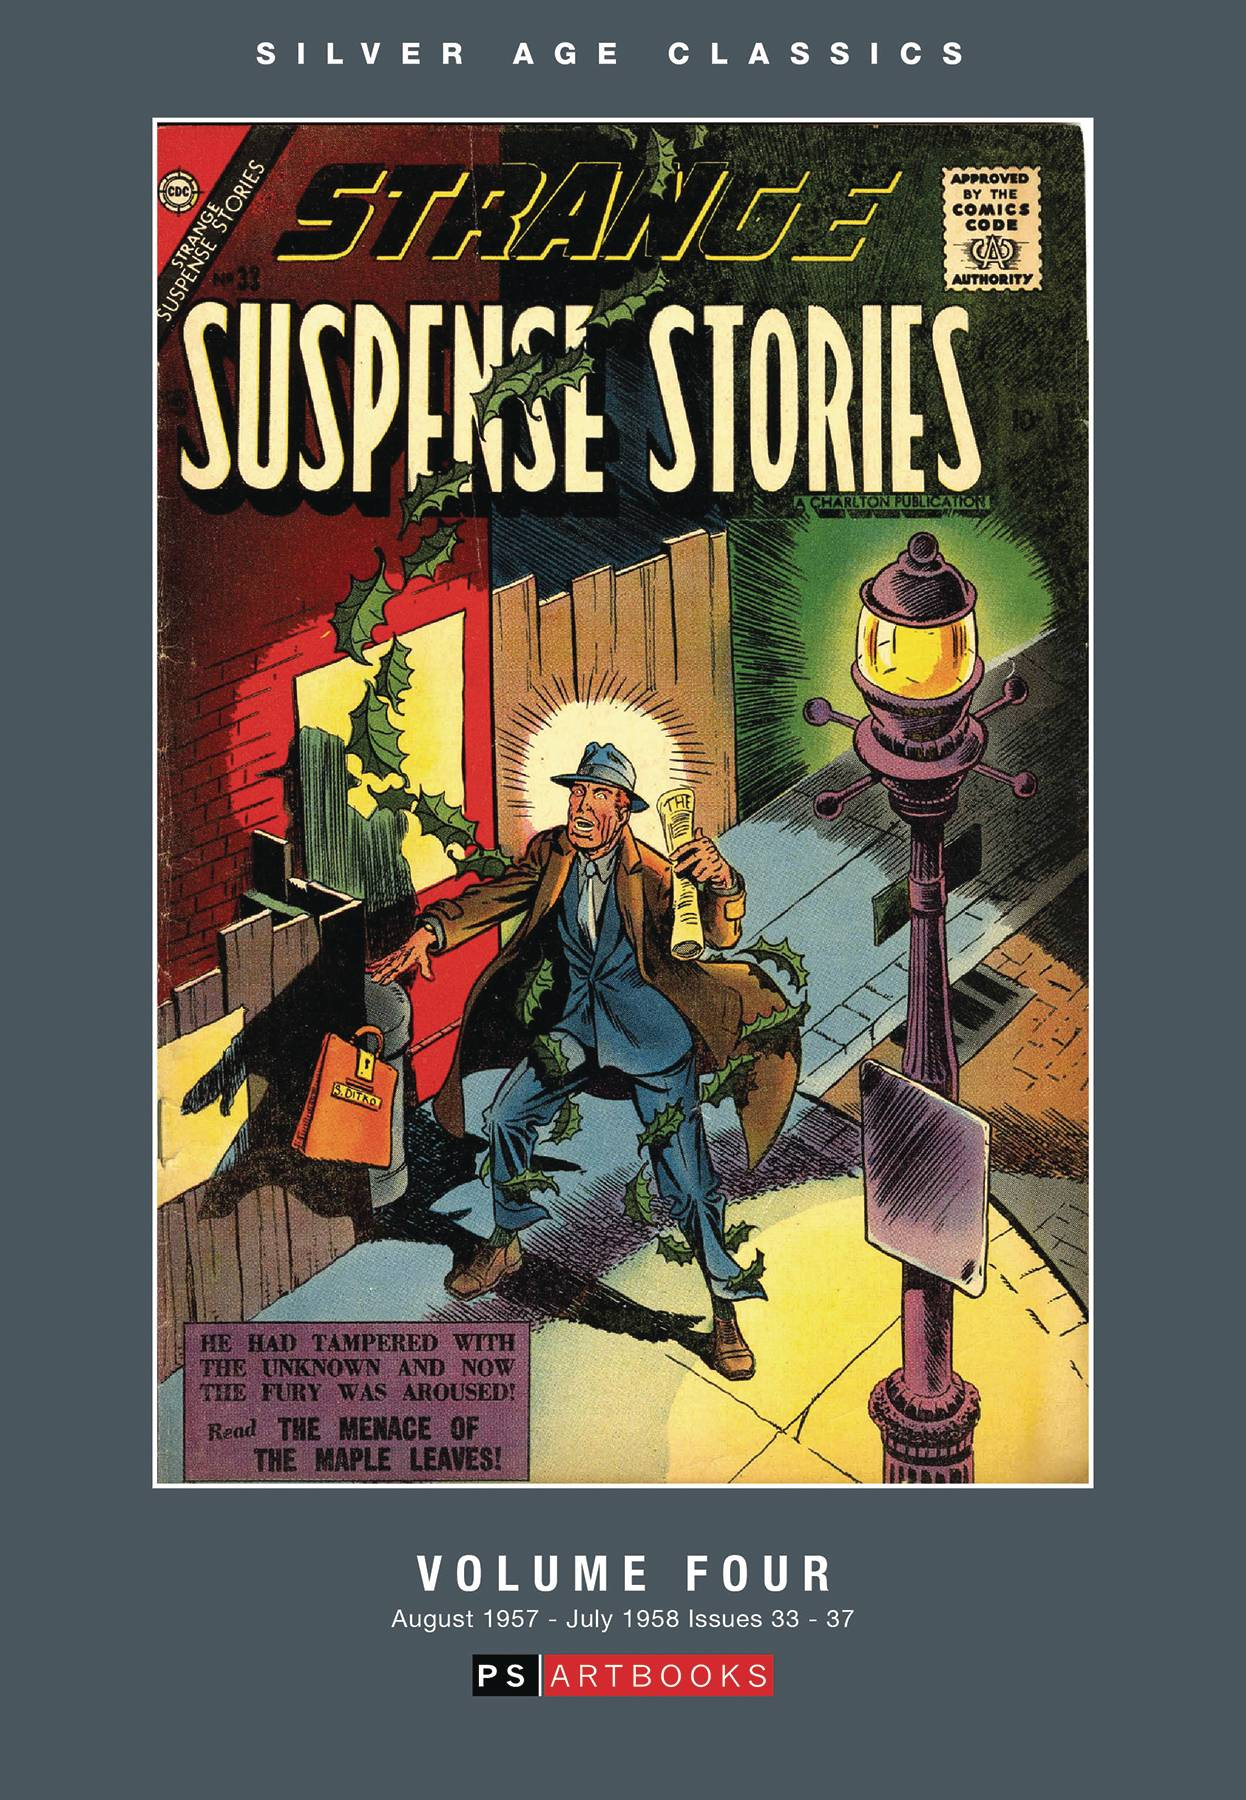 SILVER AGE CLASSICS STRANGE SUSPENSE STORIES HC VOL 04